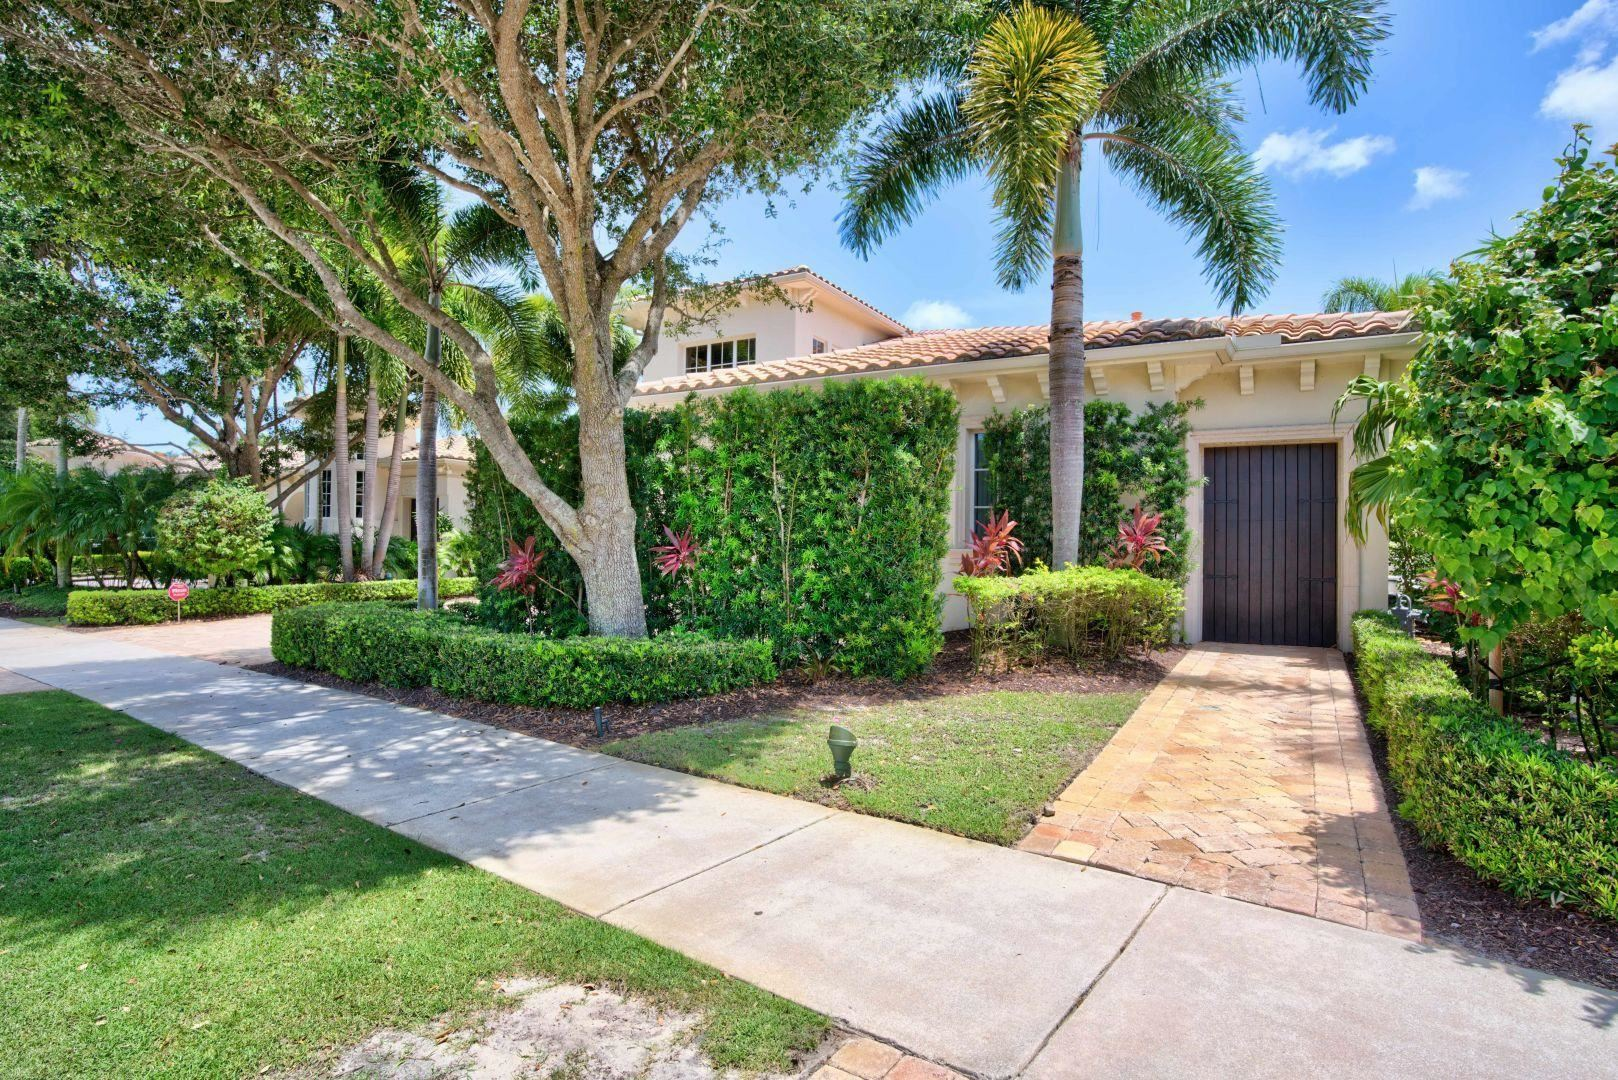 Photo of 11308 Caladium Lane, Palm Beach Gardens, FL 33418 (MLS # RX-10691456)